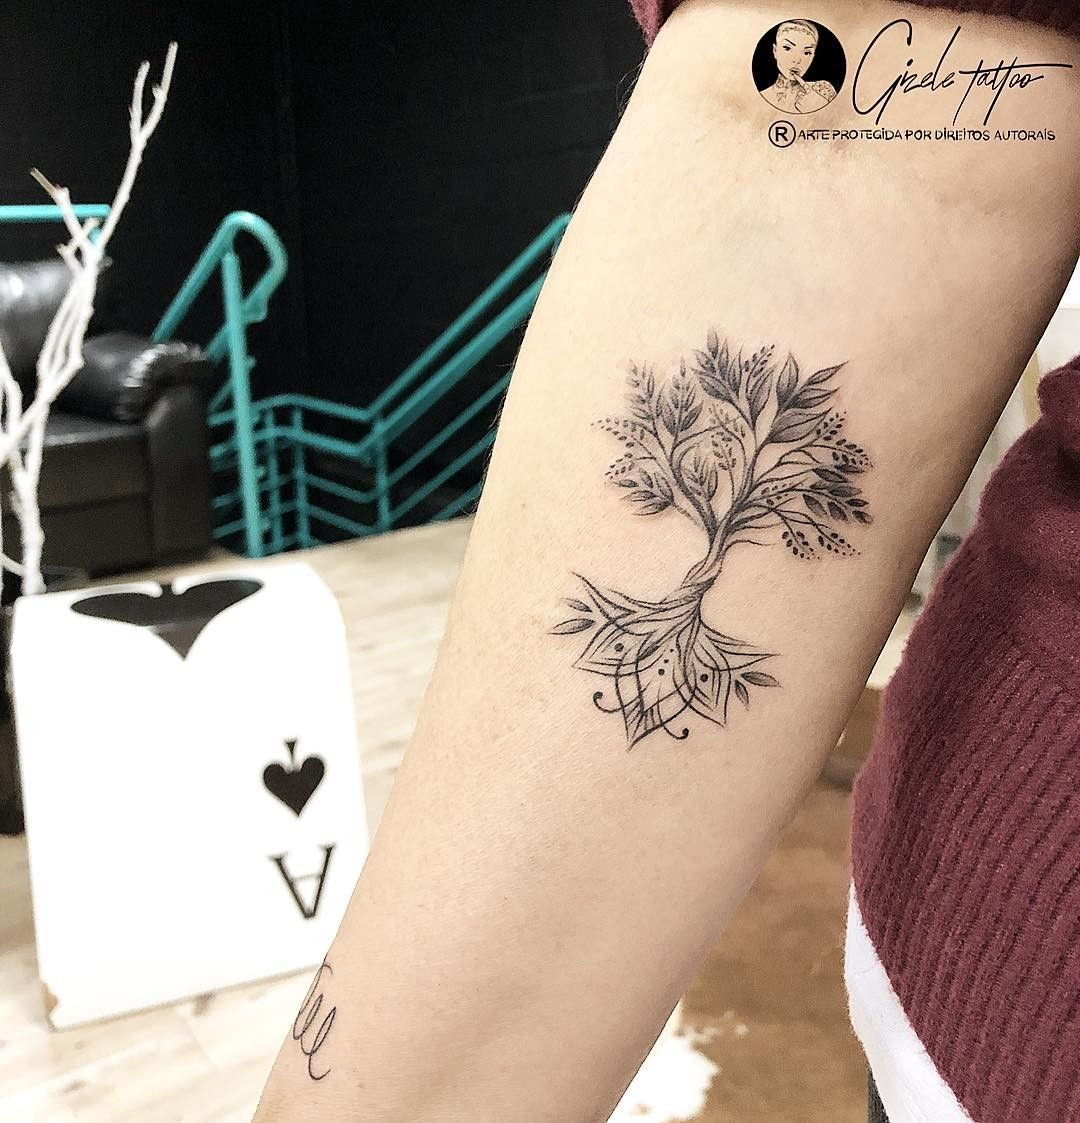 Follow me Funky tattoos, Tattoos for daughters, Baby tattoos